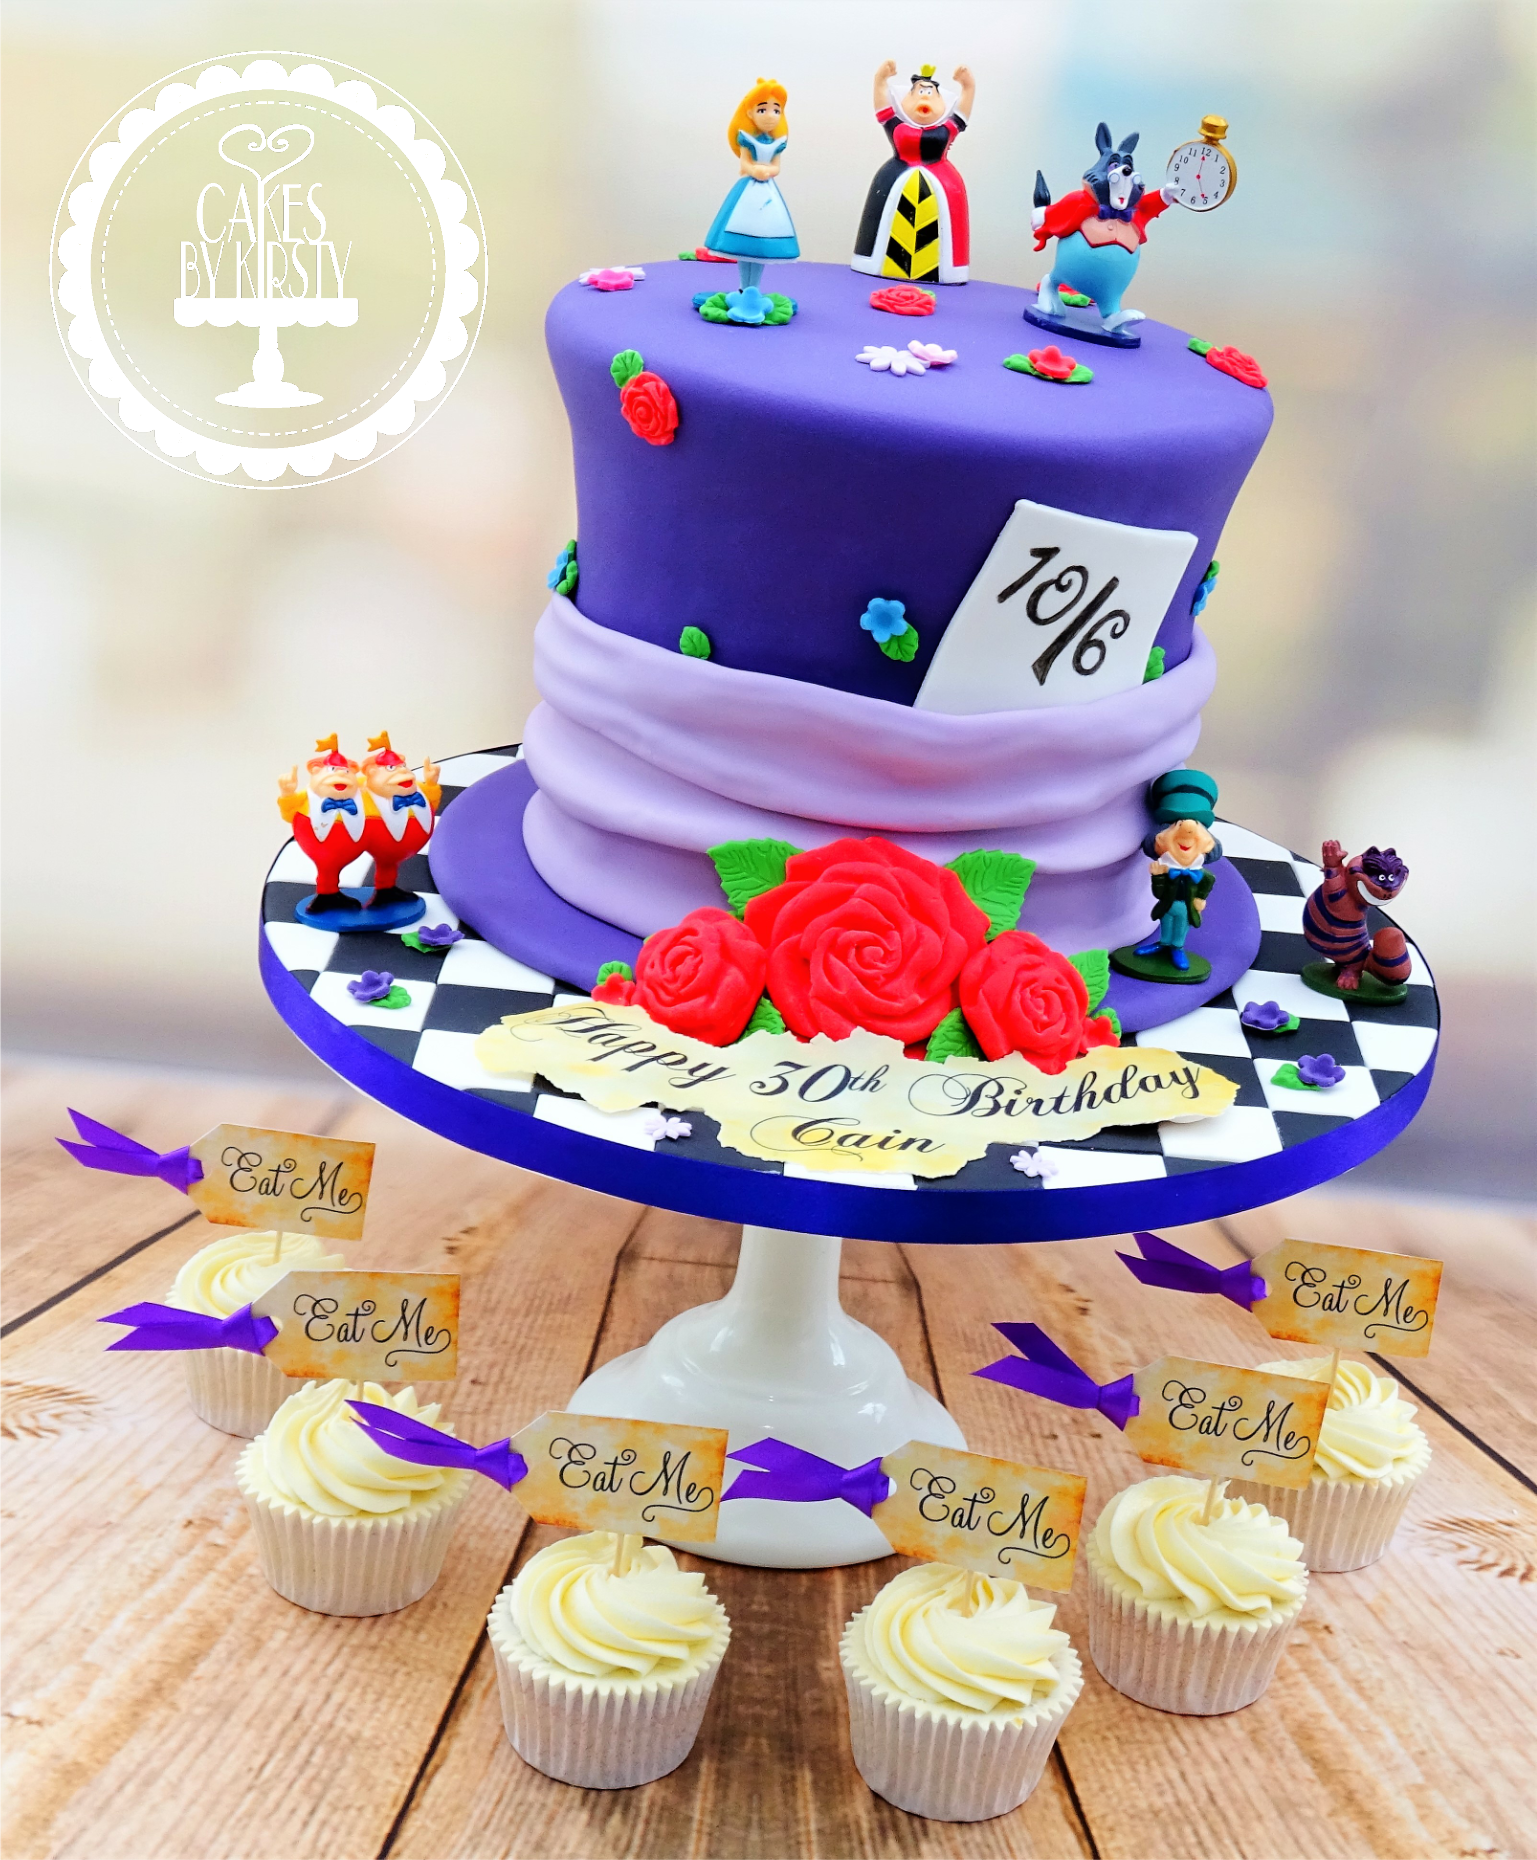 Alice In Wonderland Cake & Cupcakes